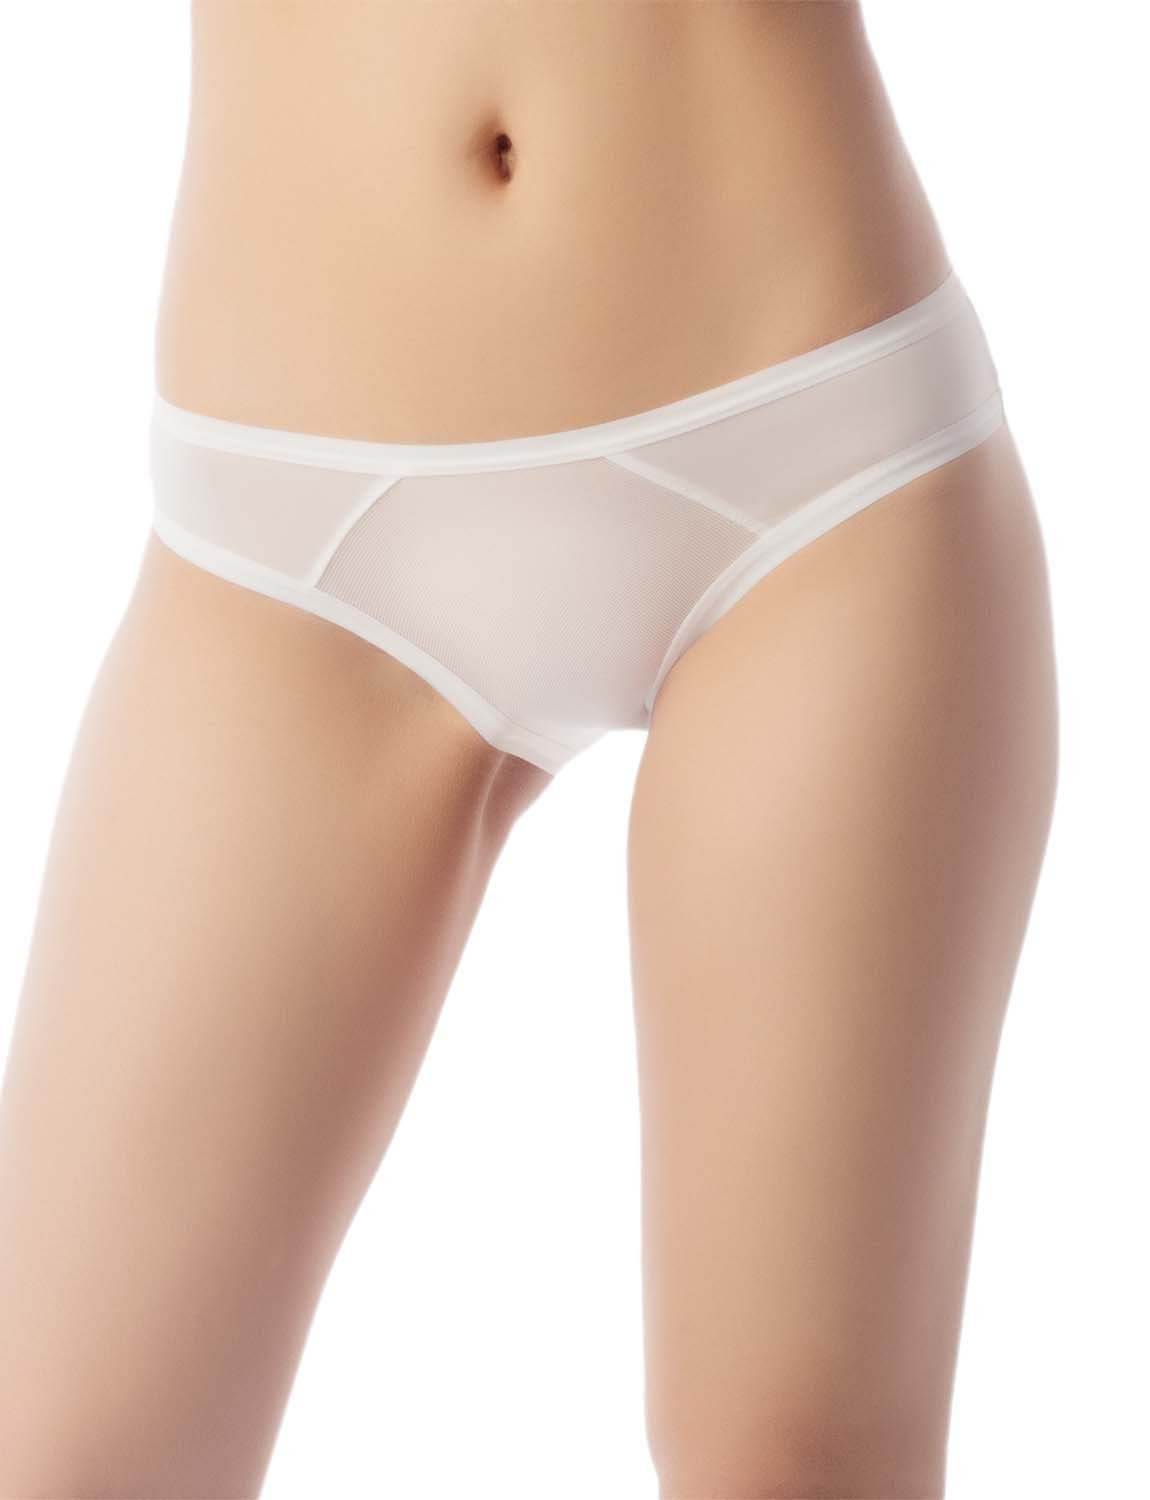 Women's Sheer See-Through Underwear Fashionable Mesh Low Rise Brief Panty, Size: M, White